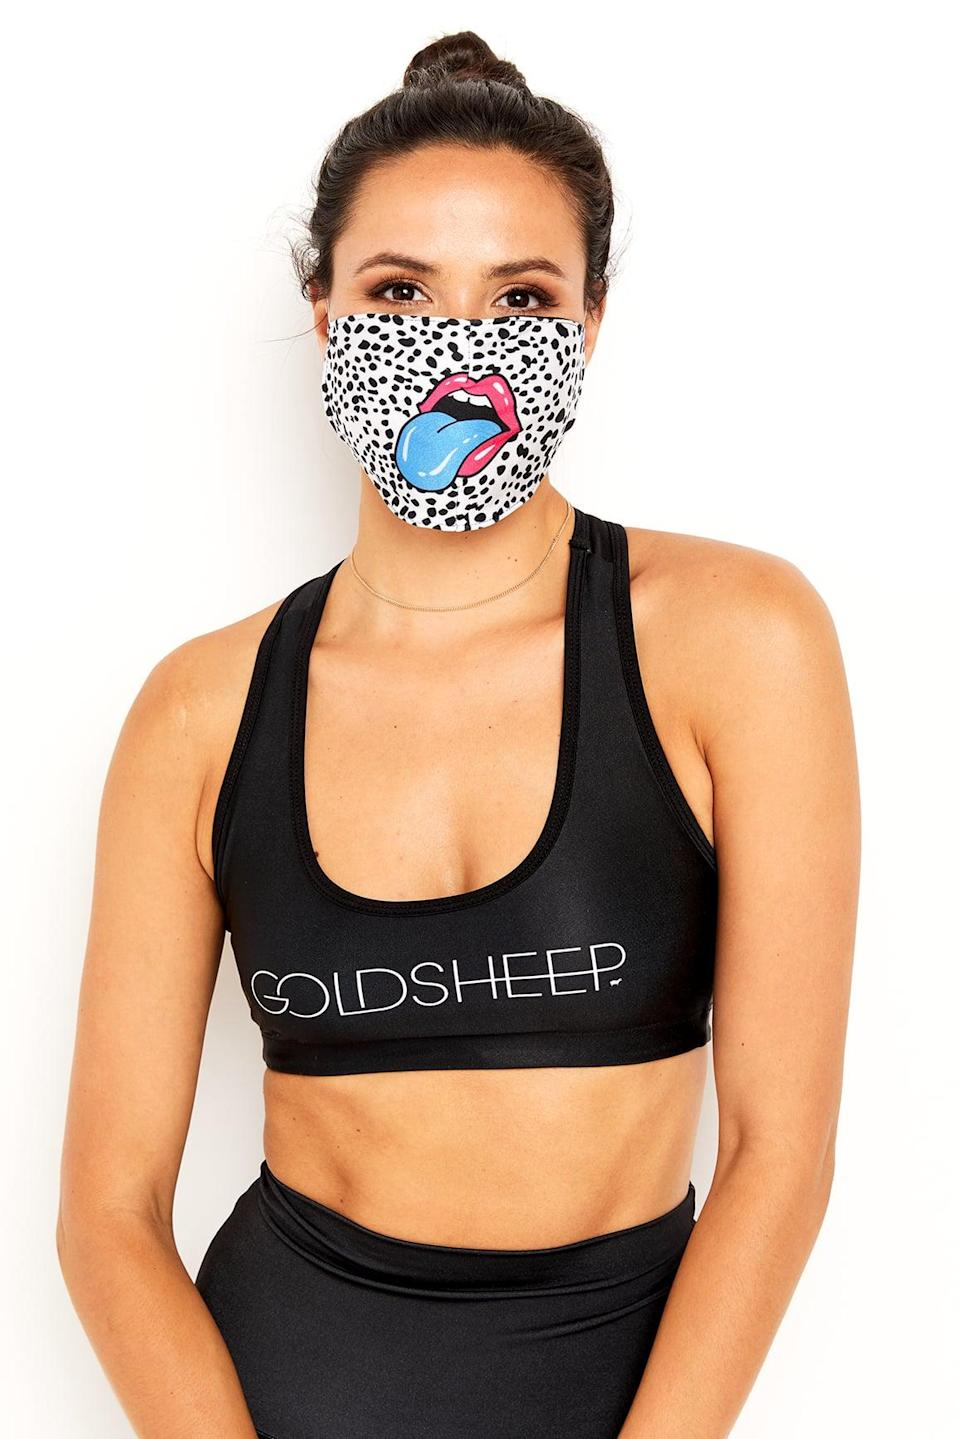 <p>With a fun design, you'll never forget putting this <span>Gold Sheep Clothing Face Mask</span> ($12) on when you go out in public.</p>